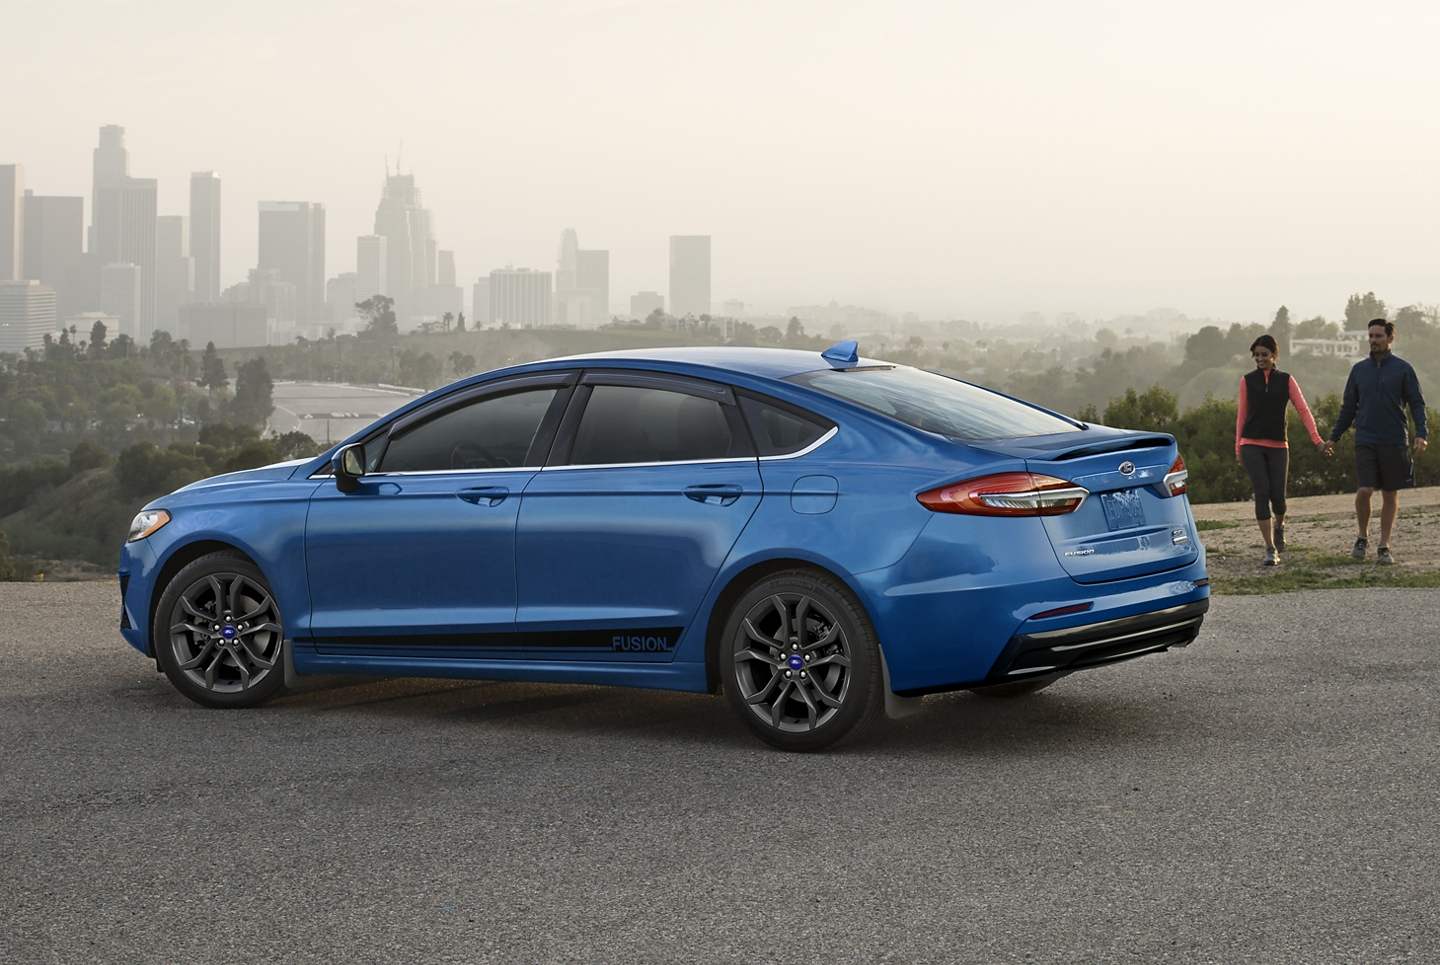 2020 Ford Fusion for Sale near Mesquite, TX